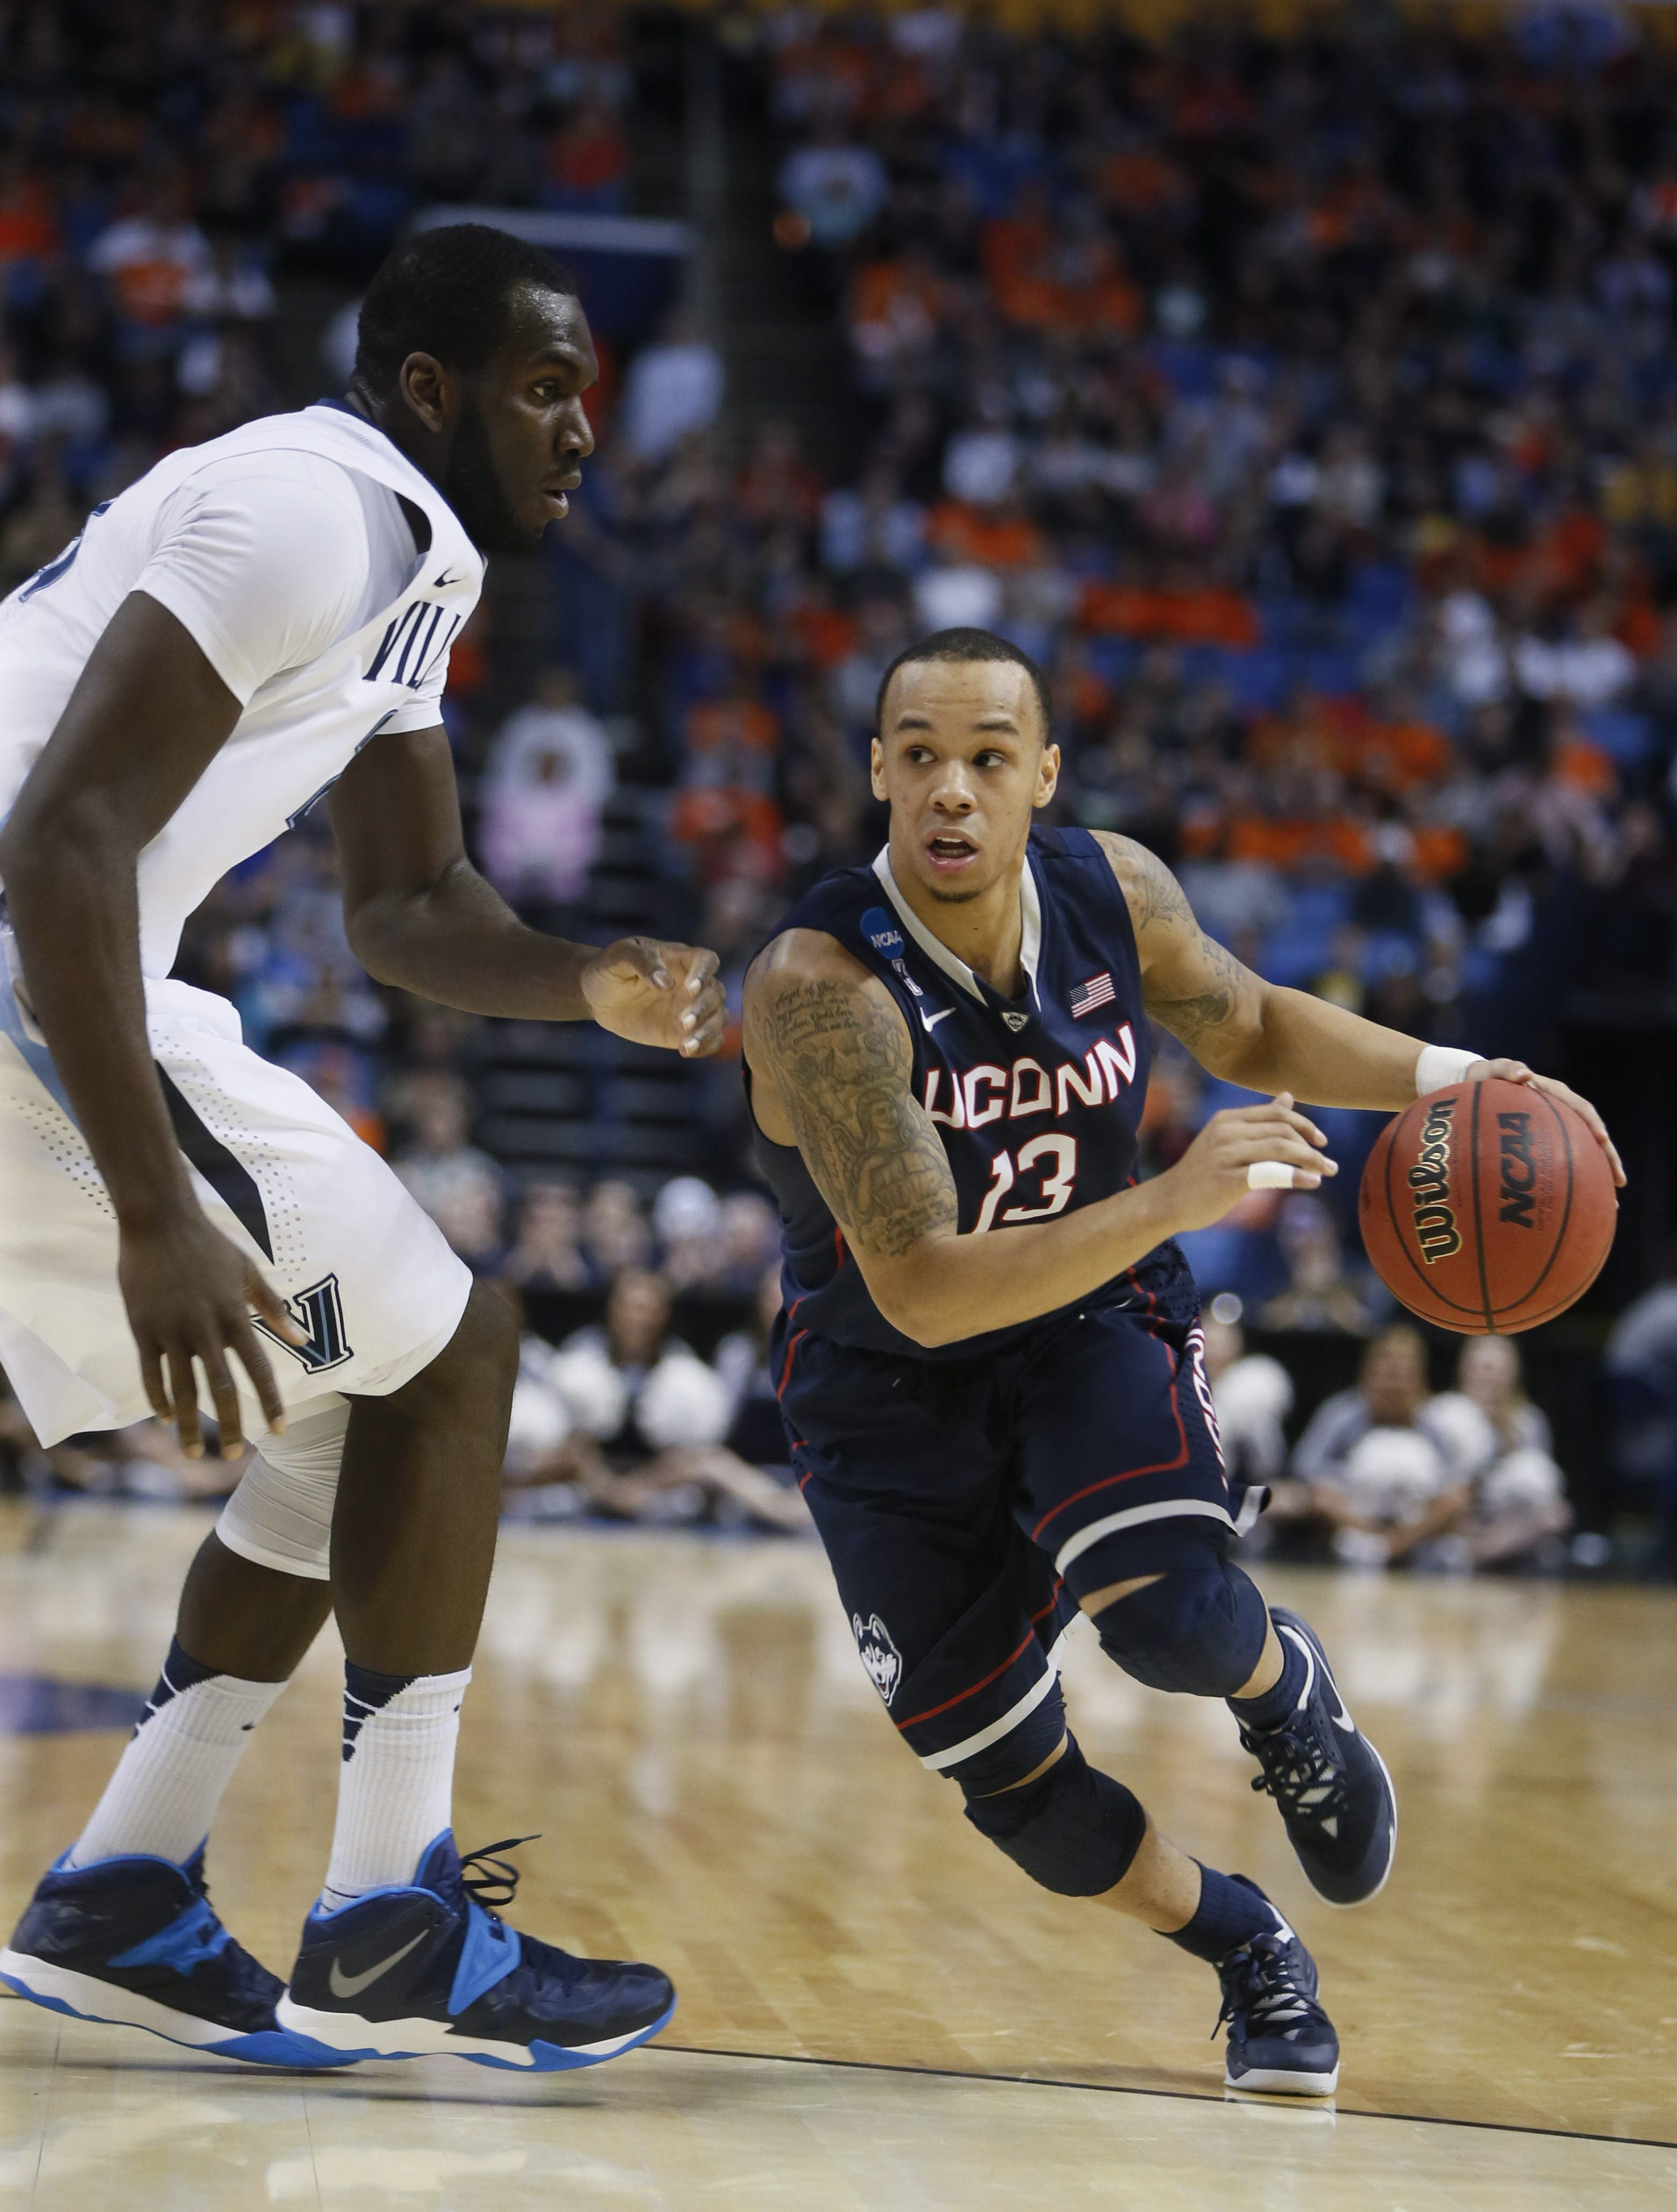 UConn's Shabazz Napier (13) drives the ball past Villanova's Daniel Ochefu, left, during the first half of the third-round game in the men's NCAA college basketball tournament at First Niagara Center, Saturday, March 22, 2014.  (Mark Mulville/Buffalo News)